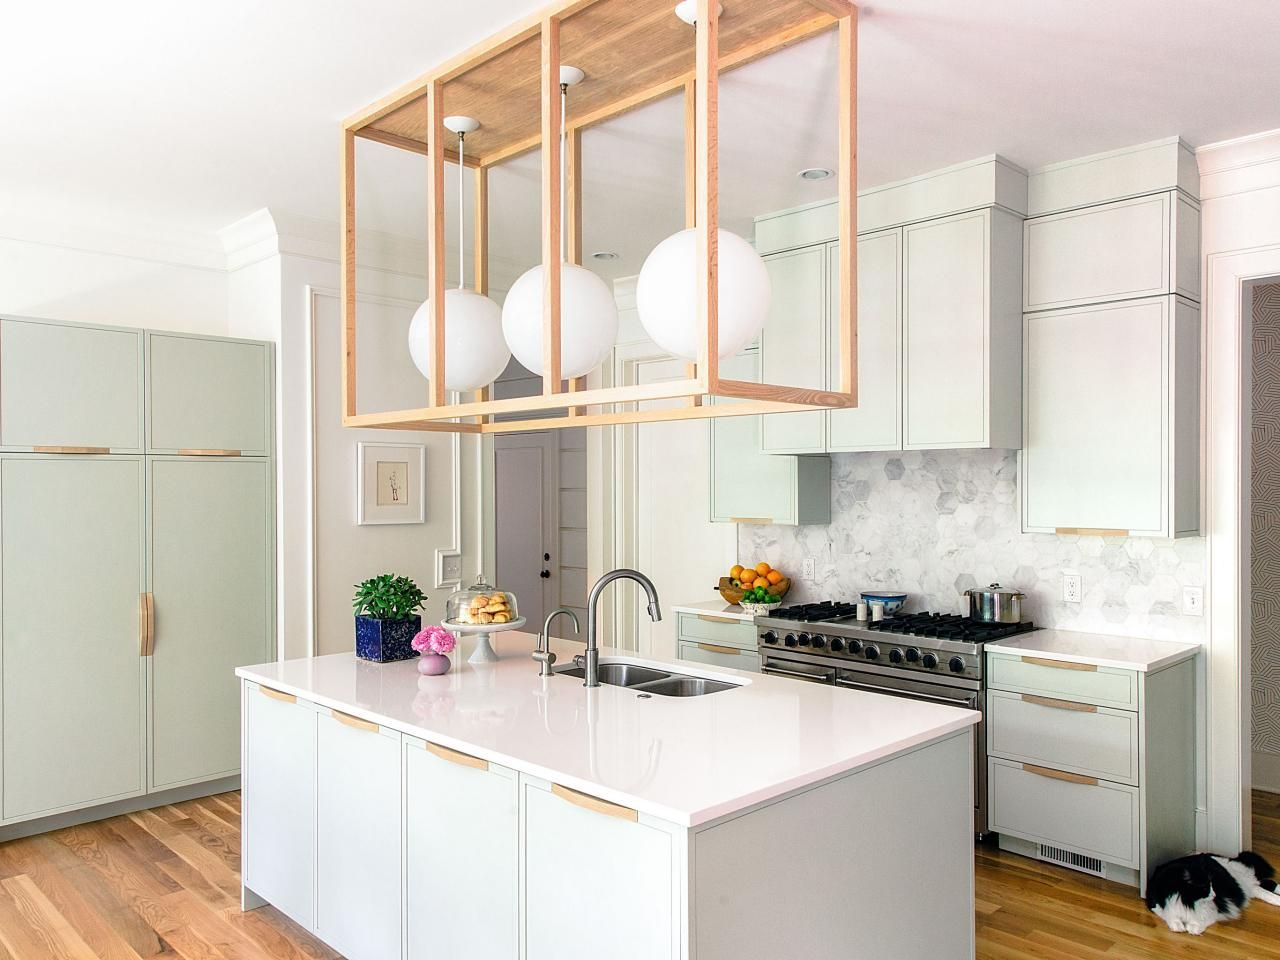 10 blue tiful kitchen cabinet color ideas in 2020 kitchen design color kitchen cabinet colors on kitchen cabinet color ideas id=17283